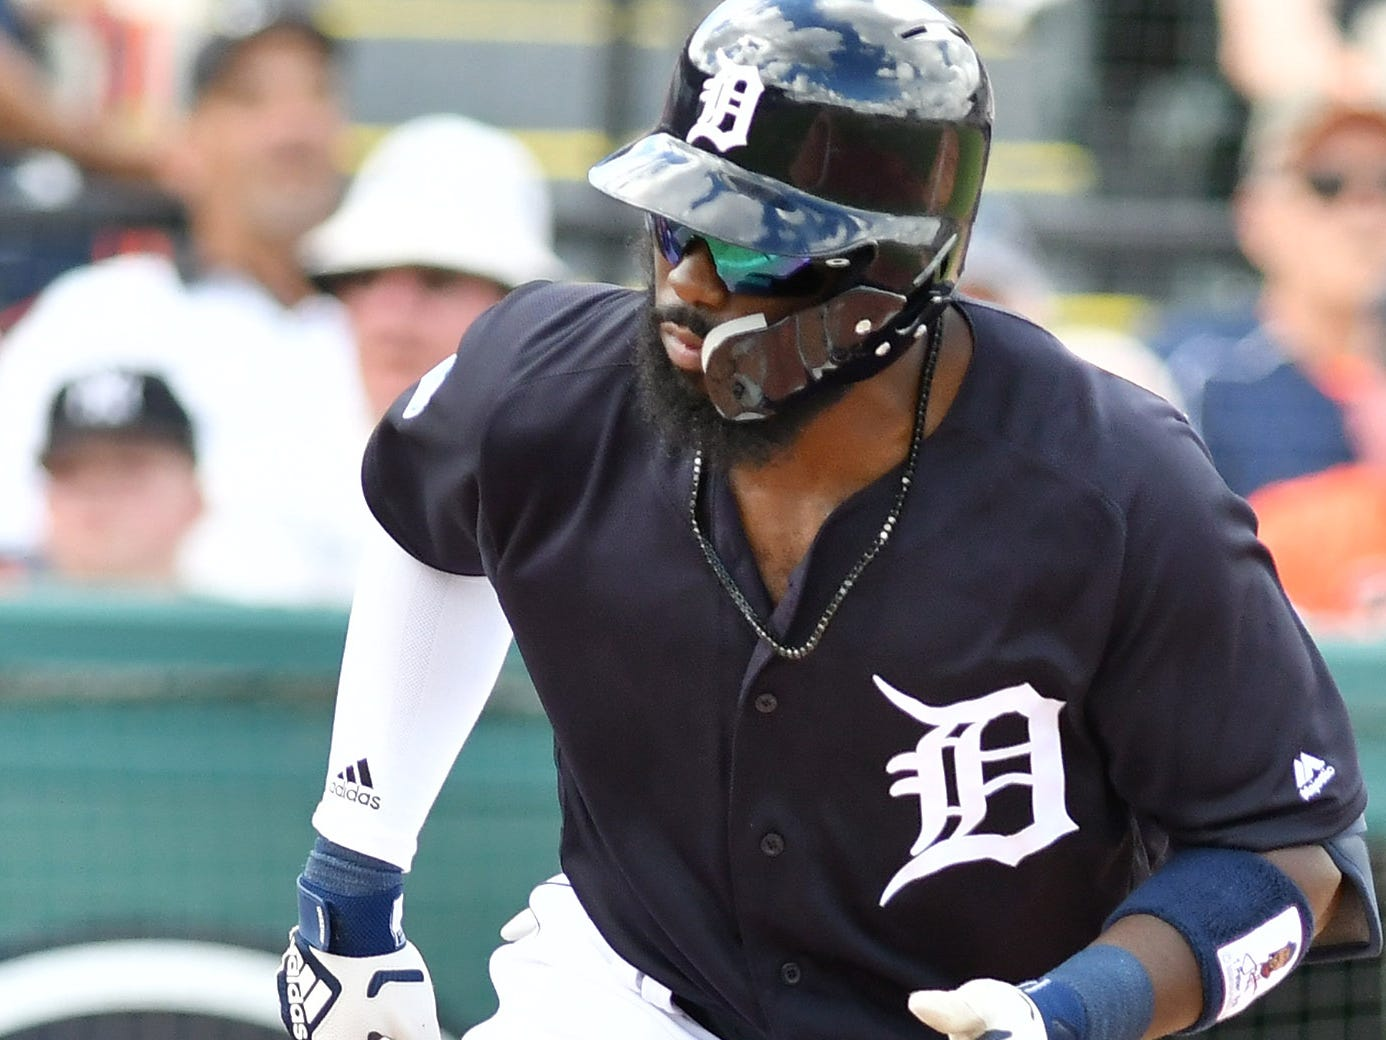 Tigers' Josh Harrison draws a walk in his first at bat of the spring in the first inning.